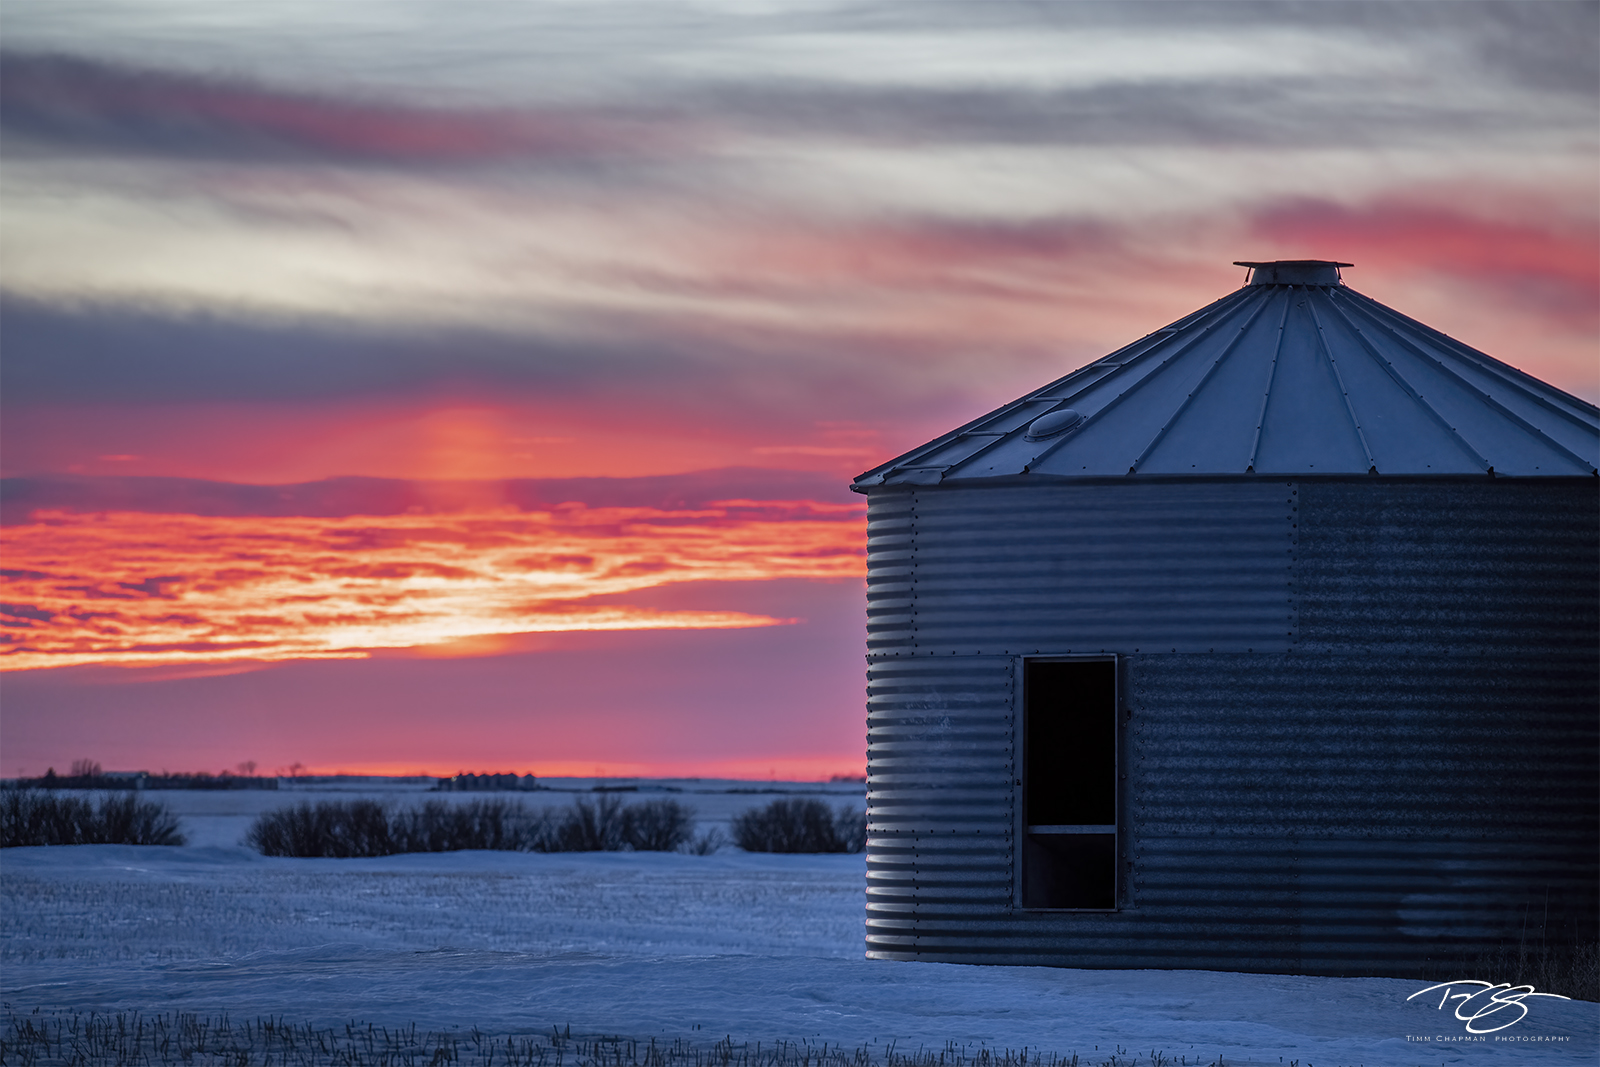 The winter prairie sky erupts in a fiery sunset